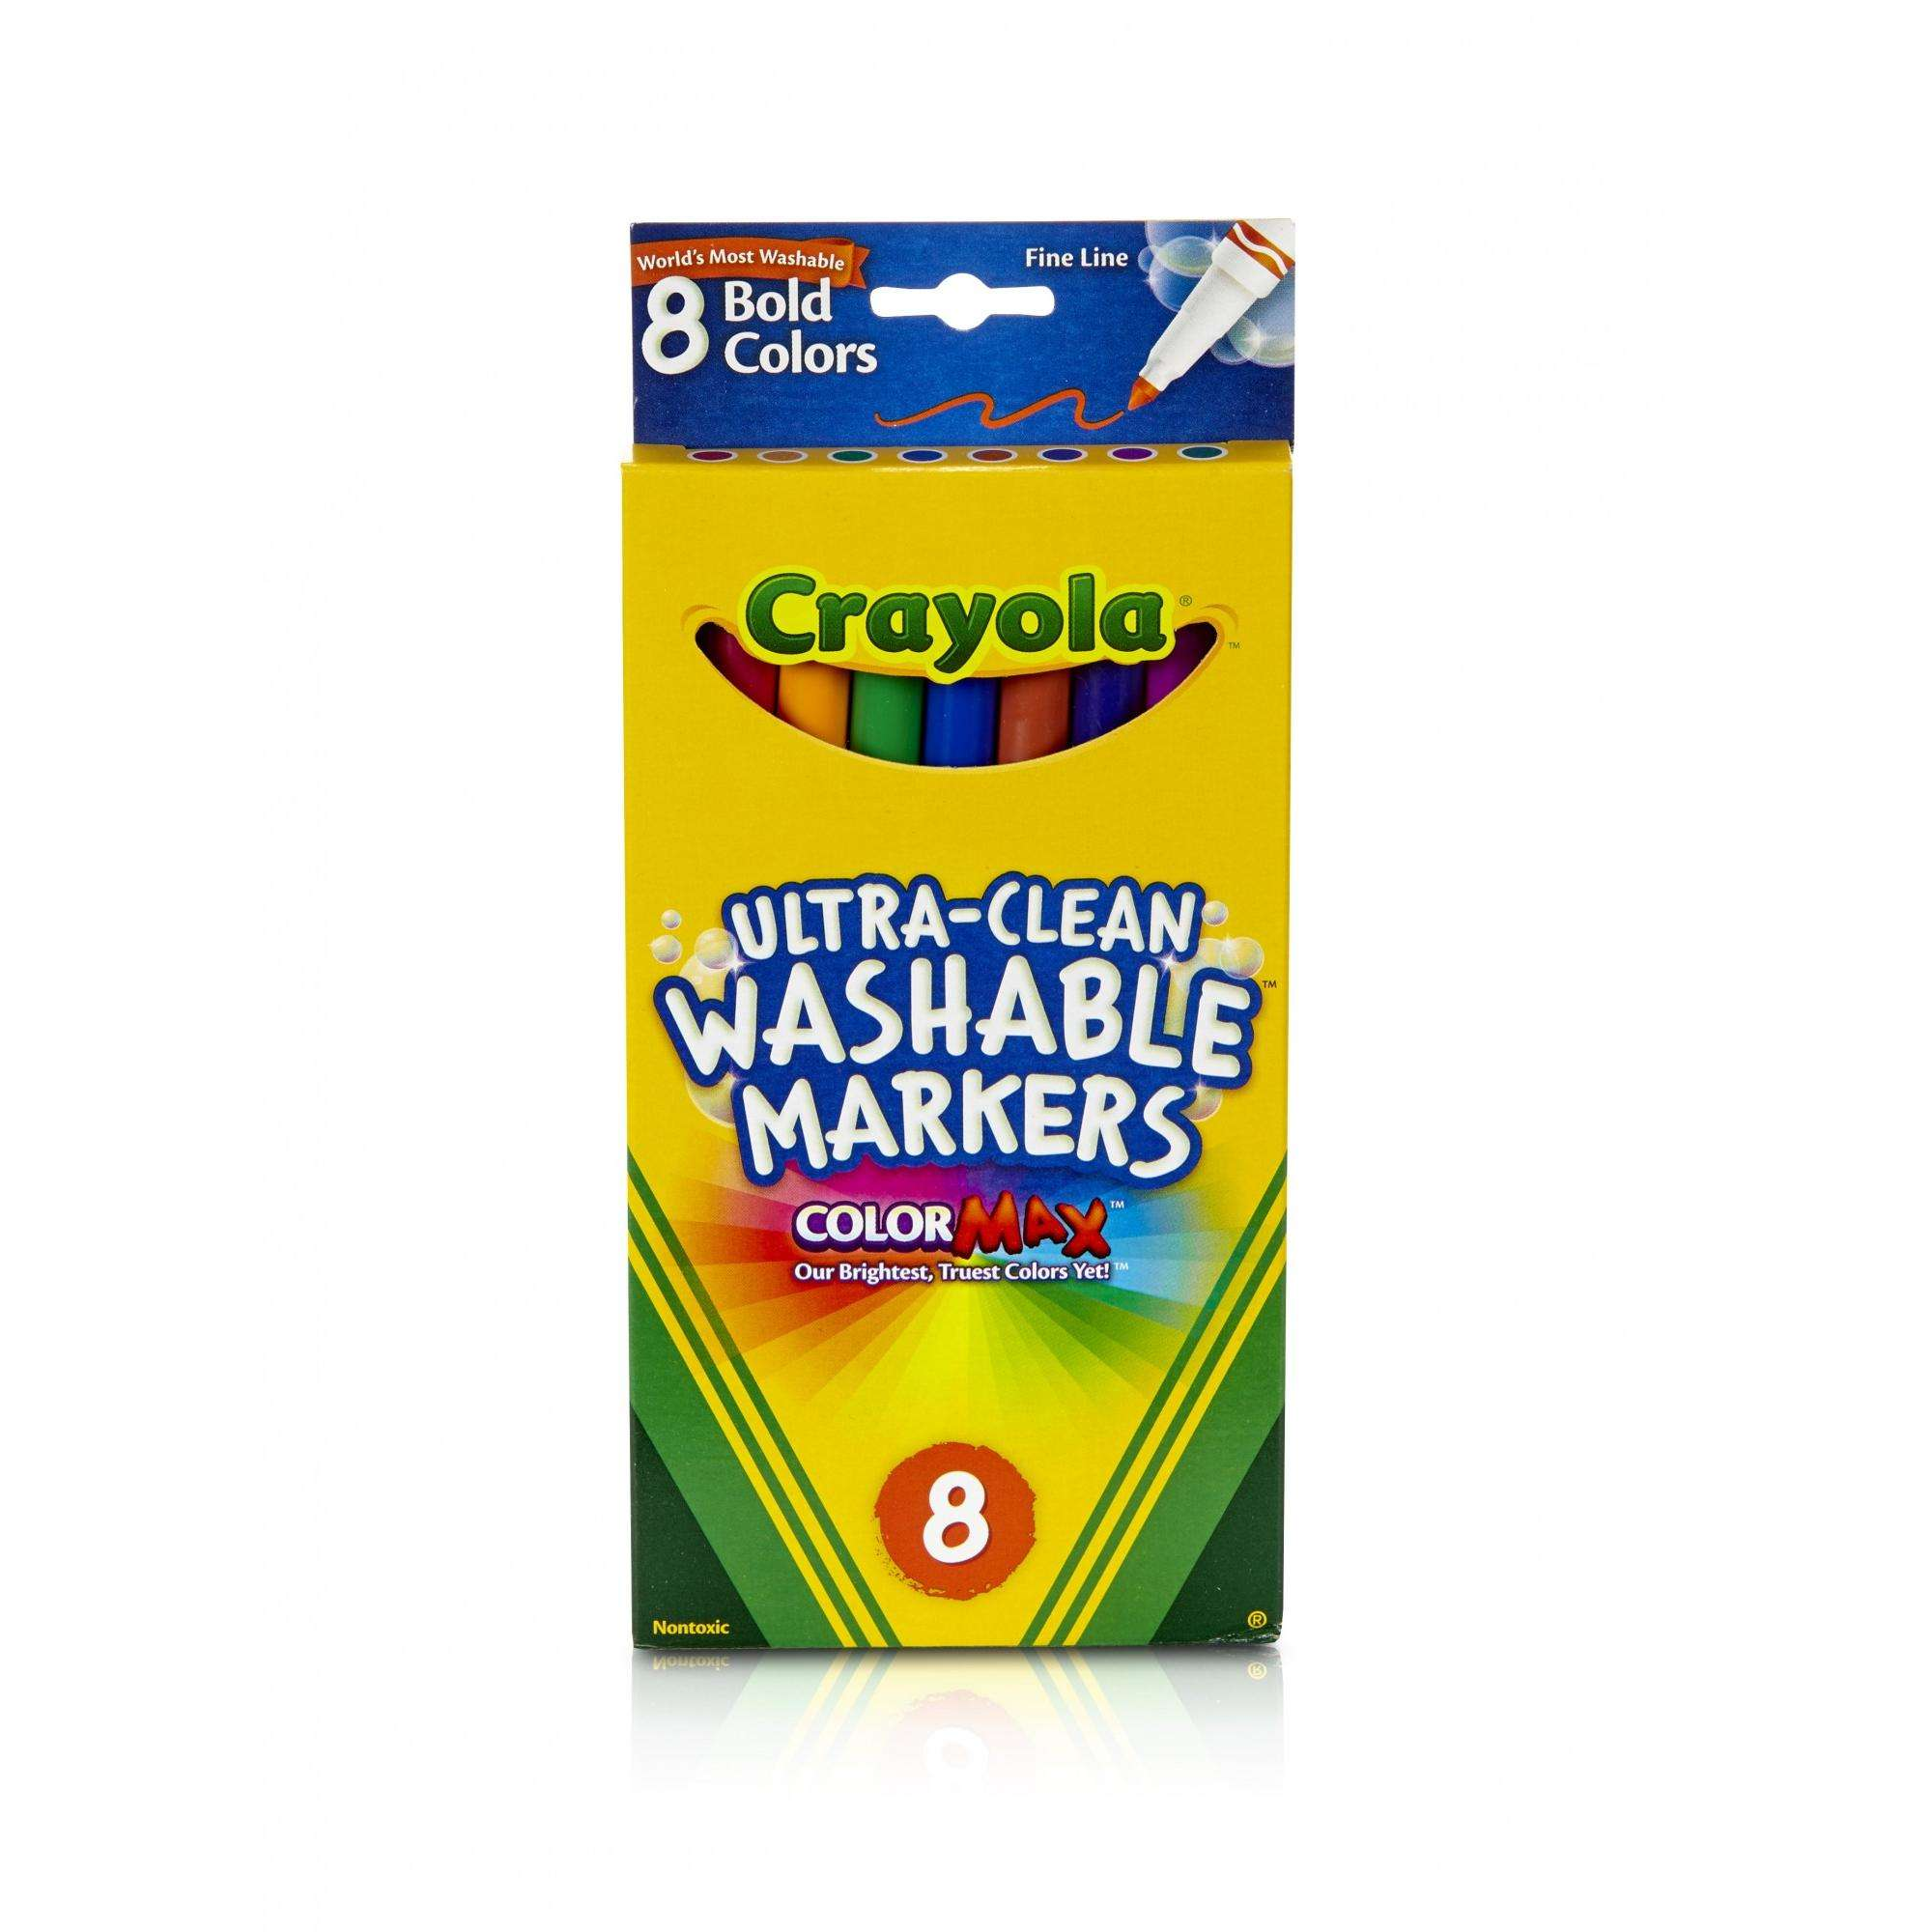 Crayola Ultra Clean Washable Fine Line Markers, Bold Colors, 8-count